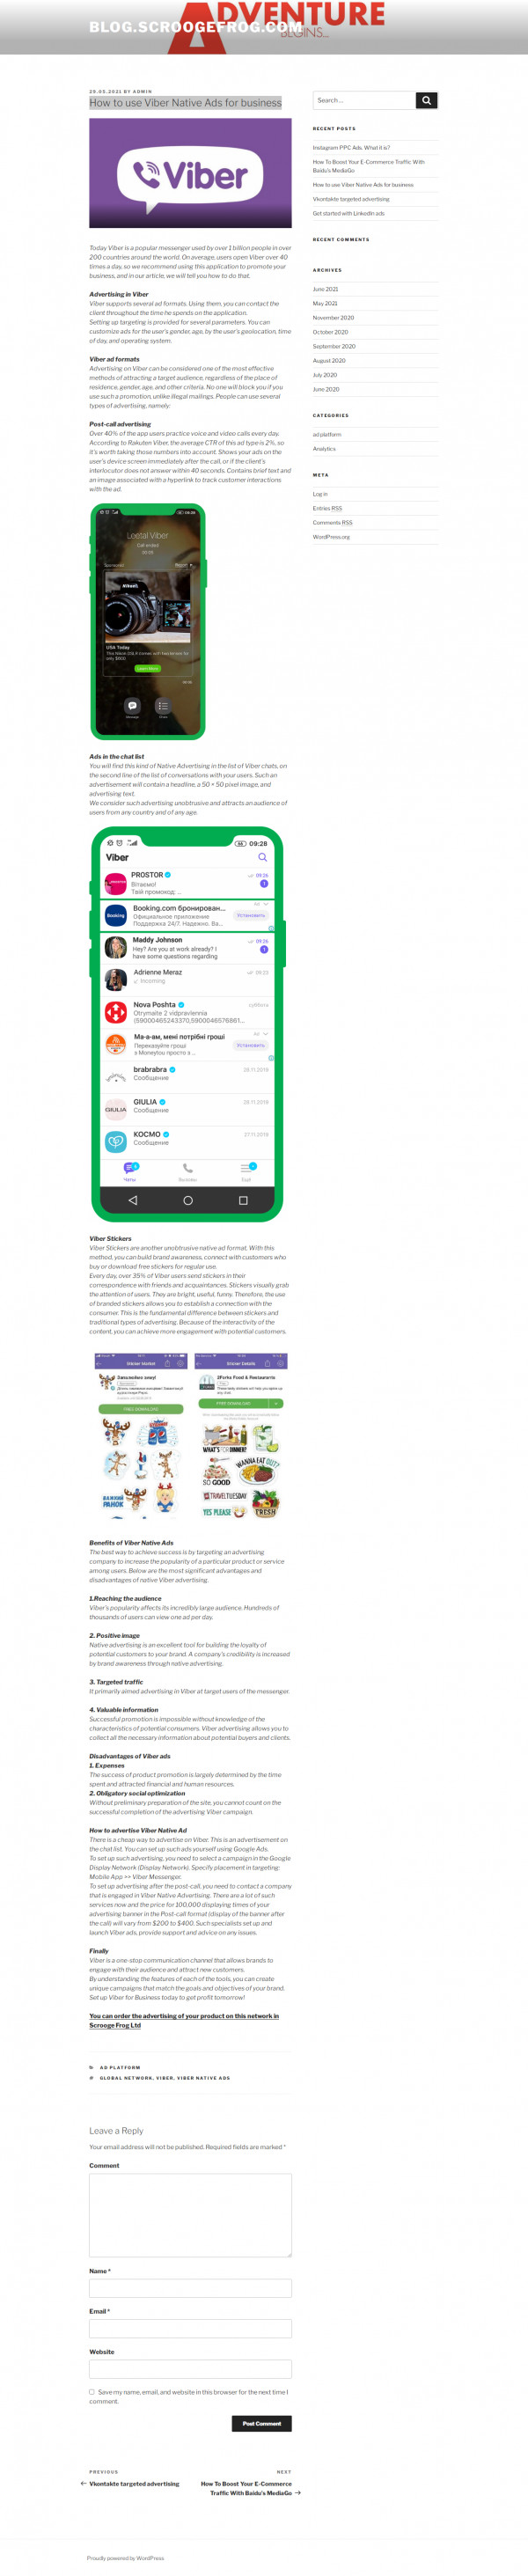 How to use Viber Native Ads for business